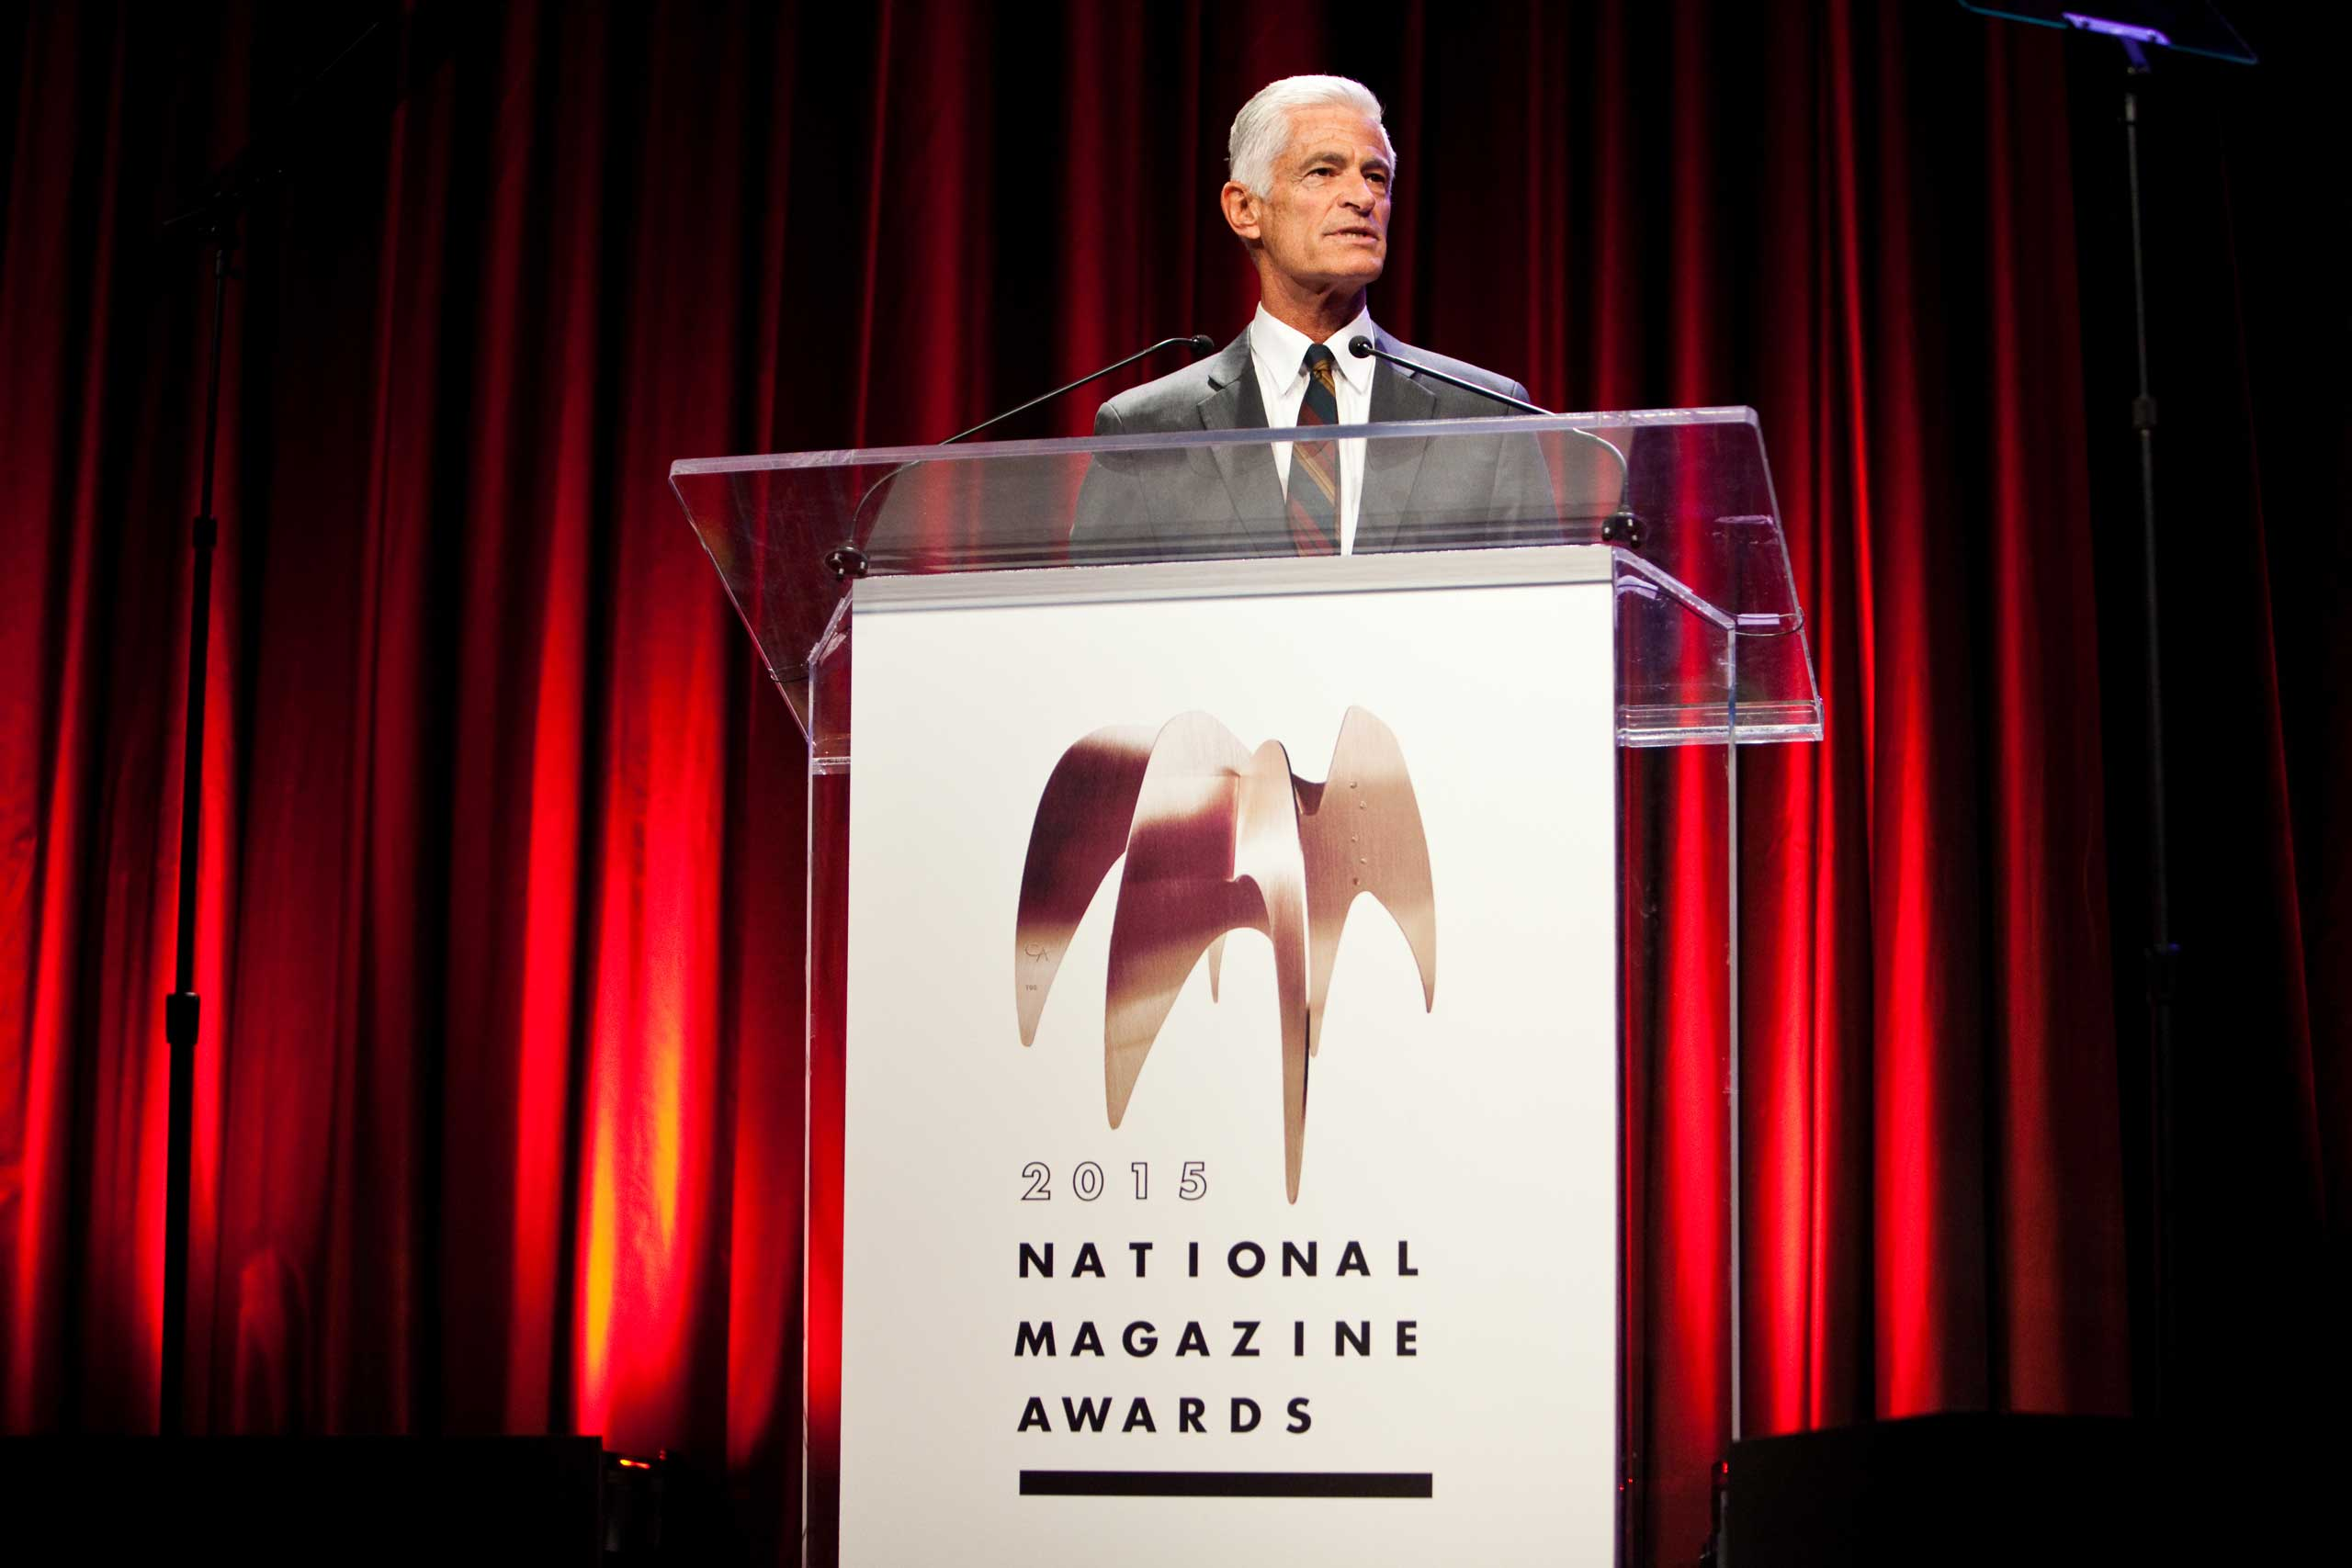 James Nachtwey receives the Creative Excellence Award at the American Society of Magazine Editors' National Magazine Award on Feb. 2, 2015